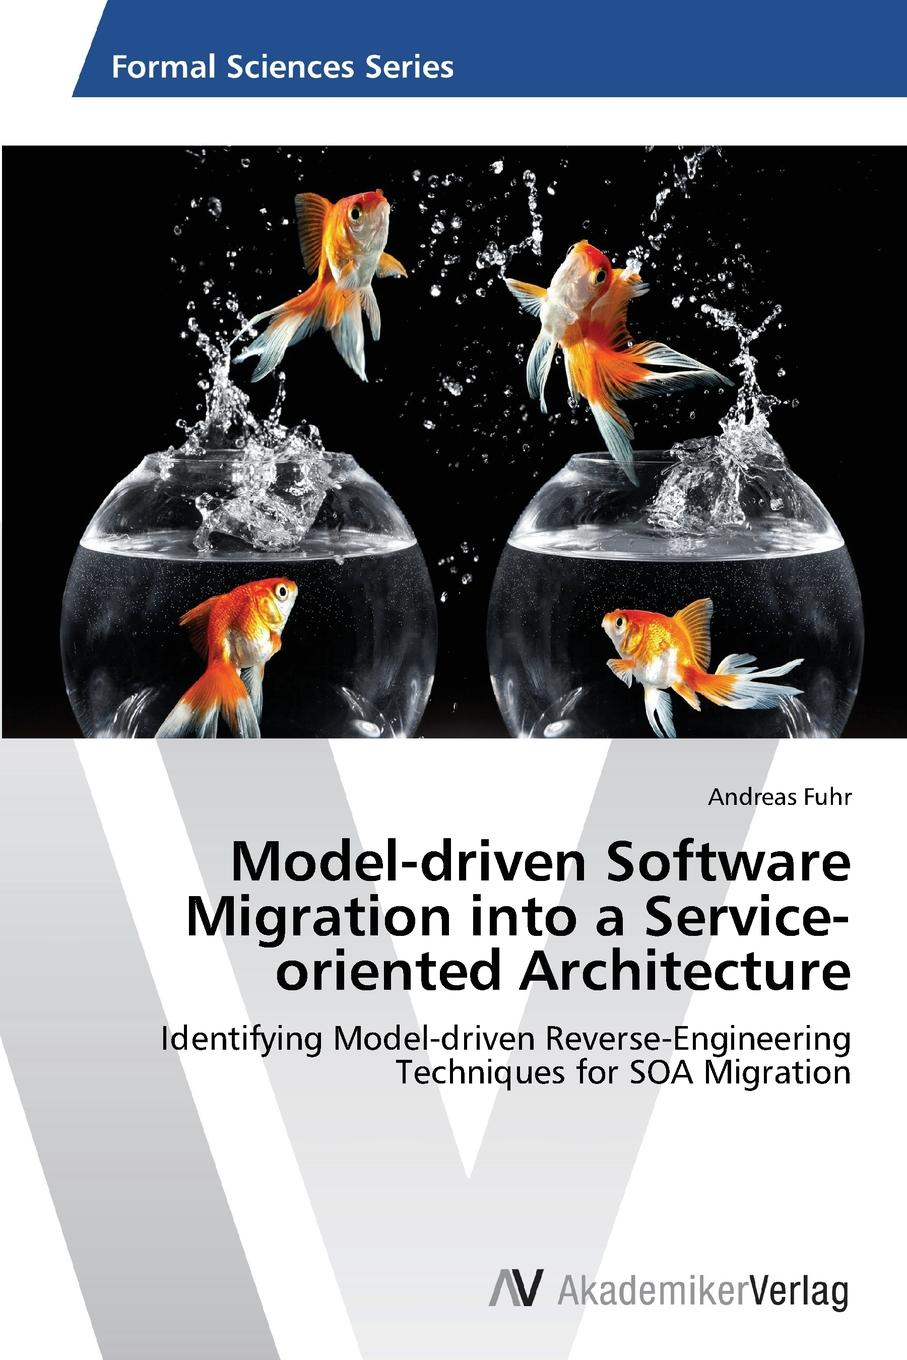 Fuhr Andreas Model-driven Software Migration into a Service-oriented Architecture kyle gabhart service oriented architecture field guide for executives